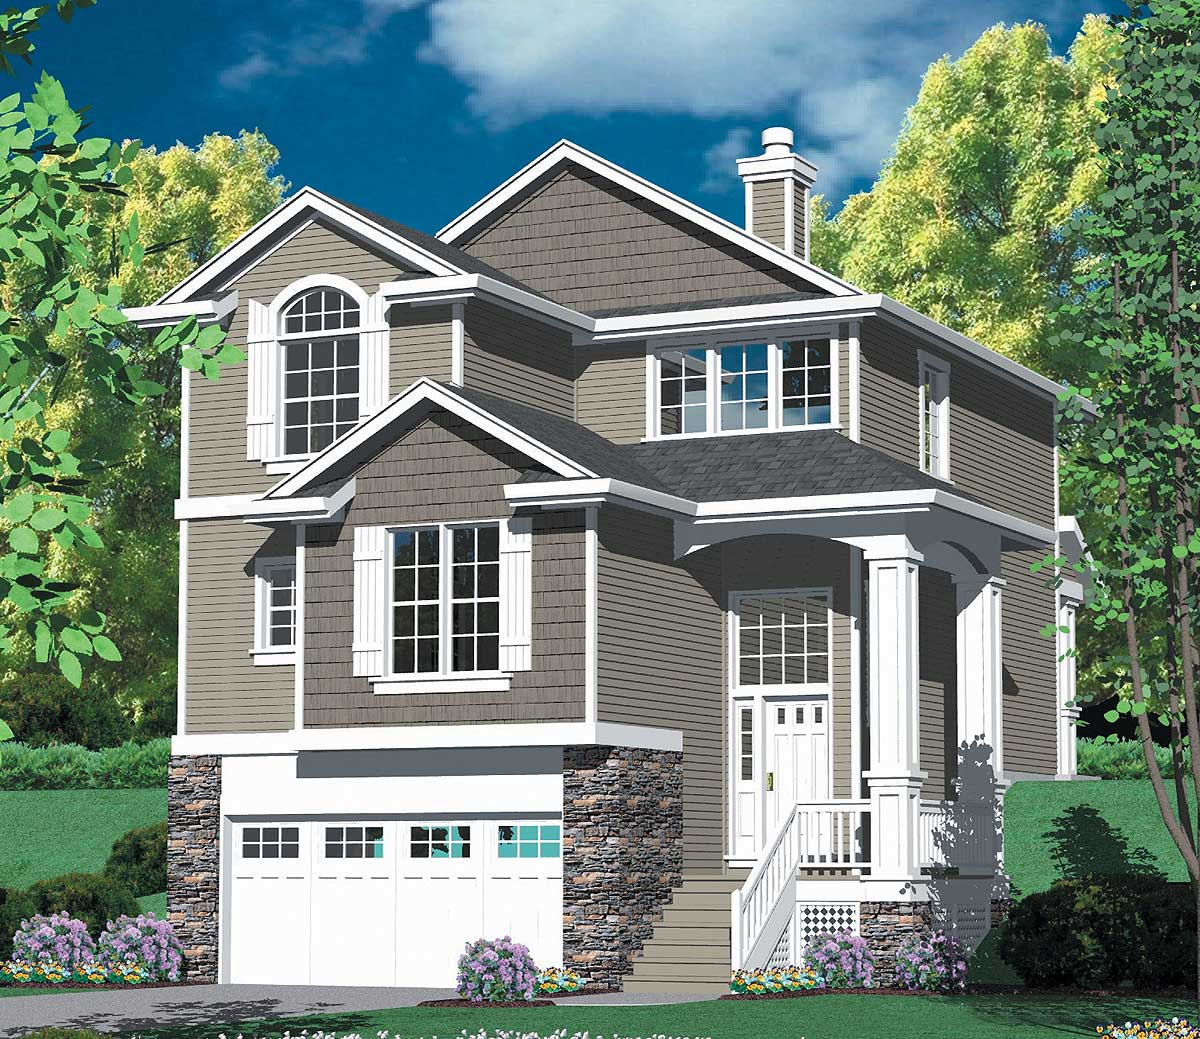 Home Design Ideas Architecture: Multi-level Craftsman Plan - 69296AM